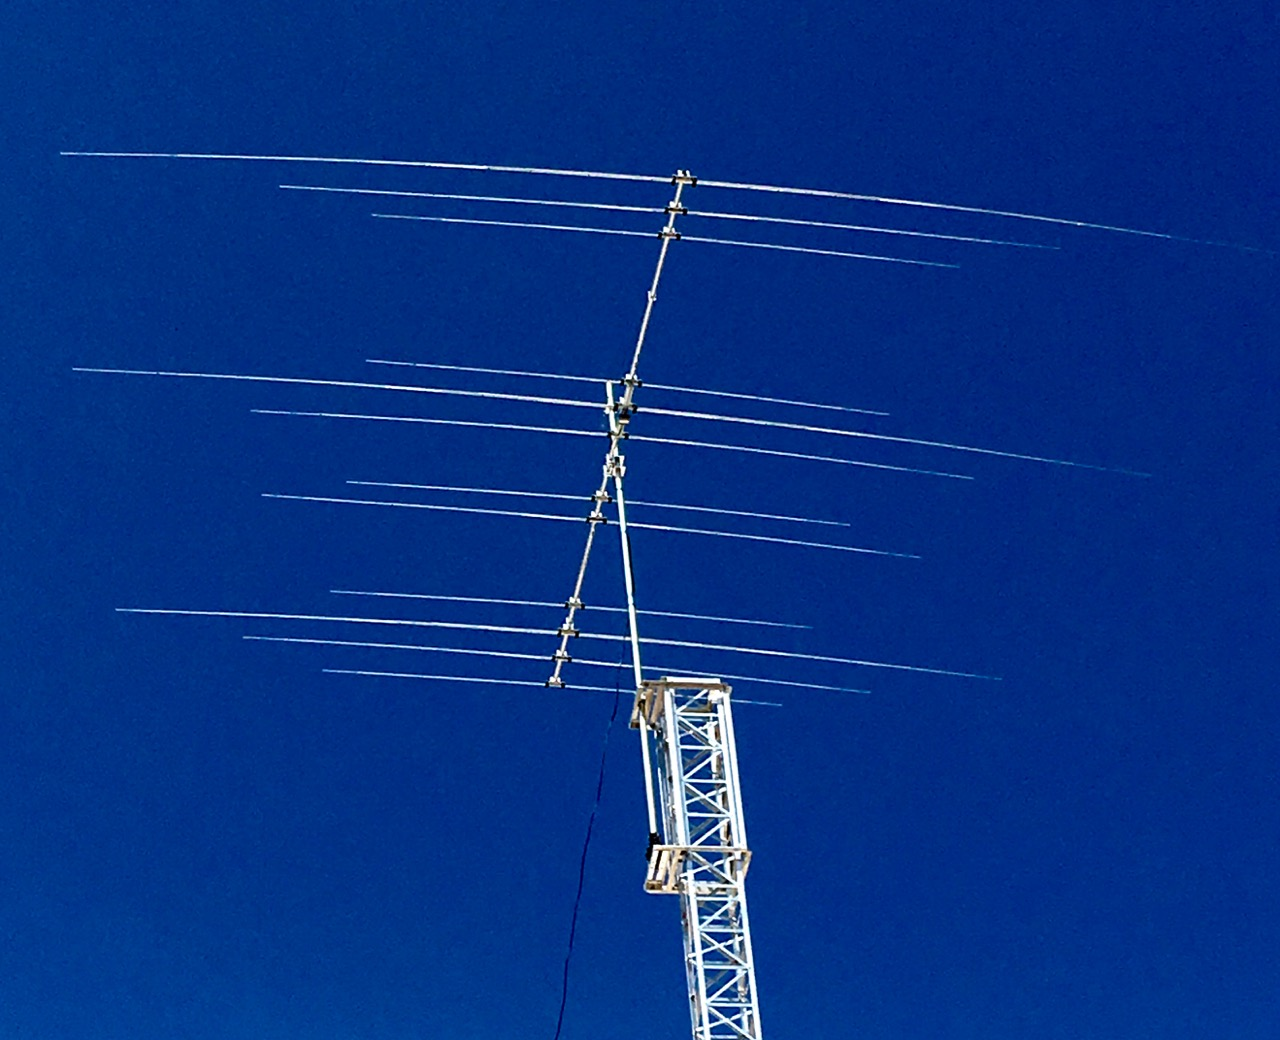 Jk Mid Tri Yagi Antenna Of 3 Elements For The 20 M Band4 Band 4 15 And 5 10 On A 24 Feet 732 Boom